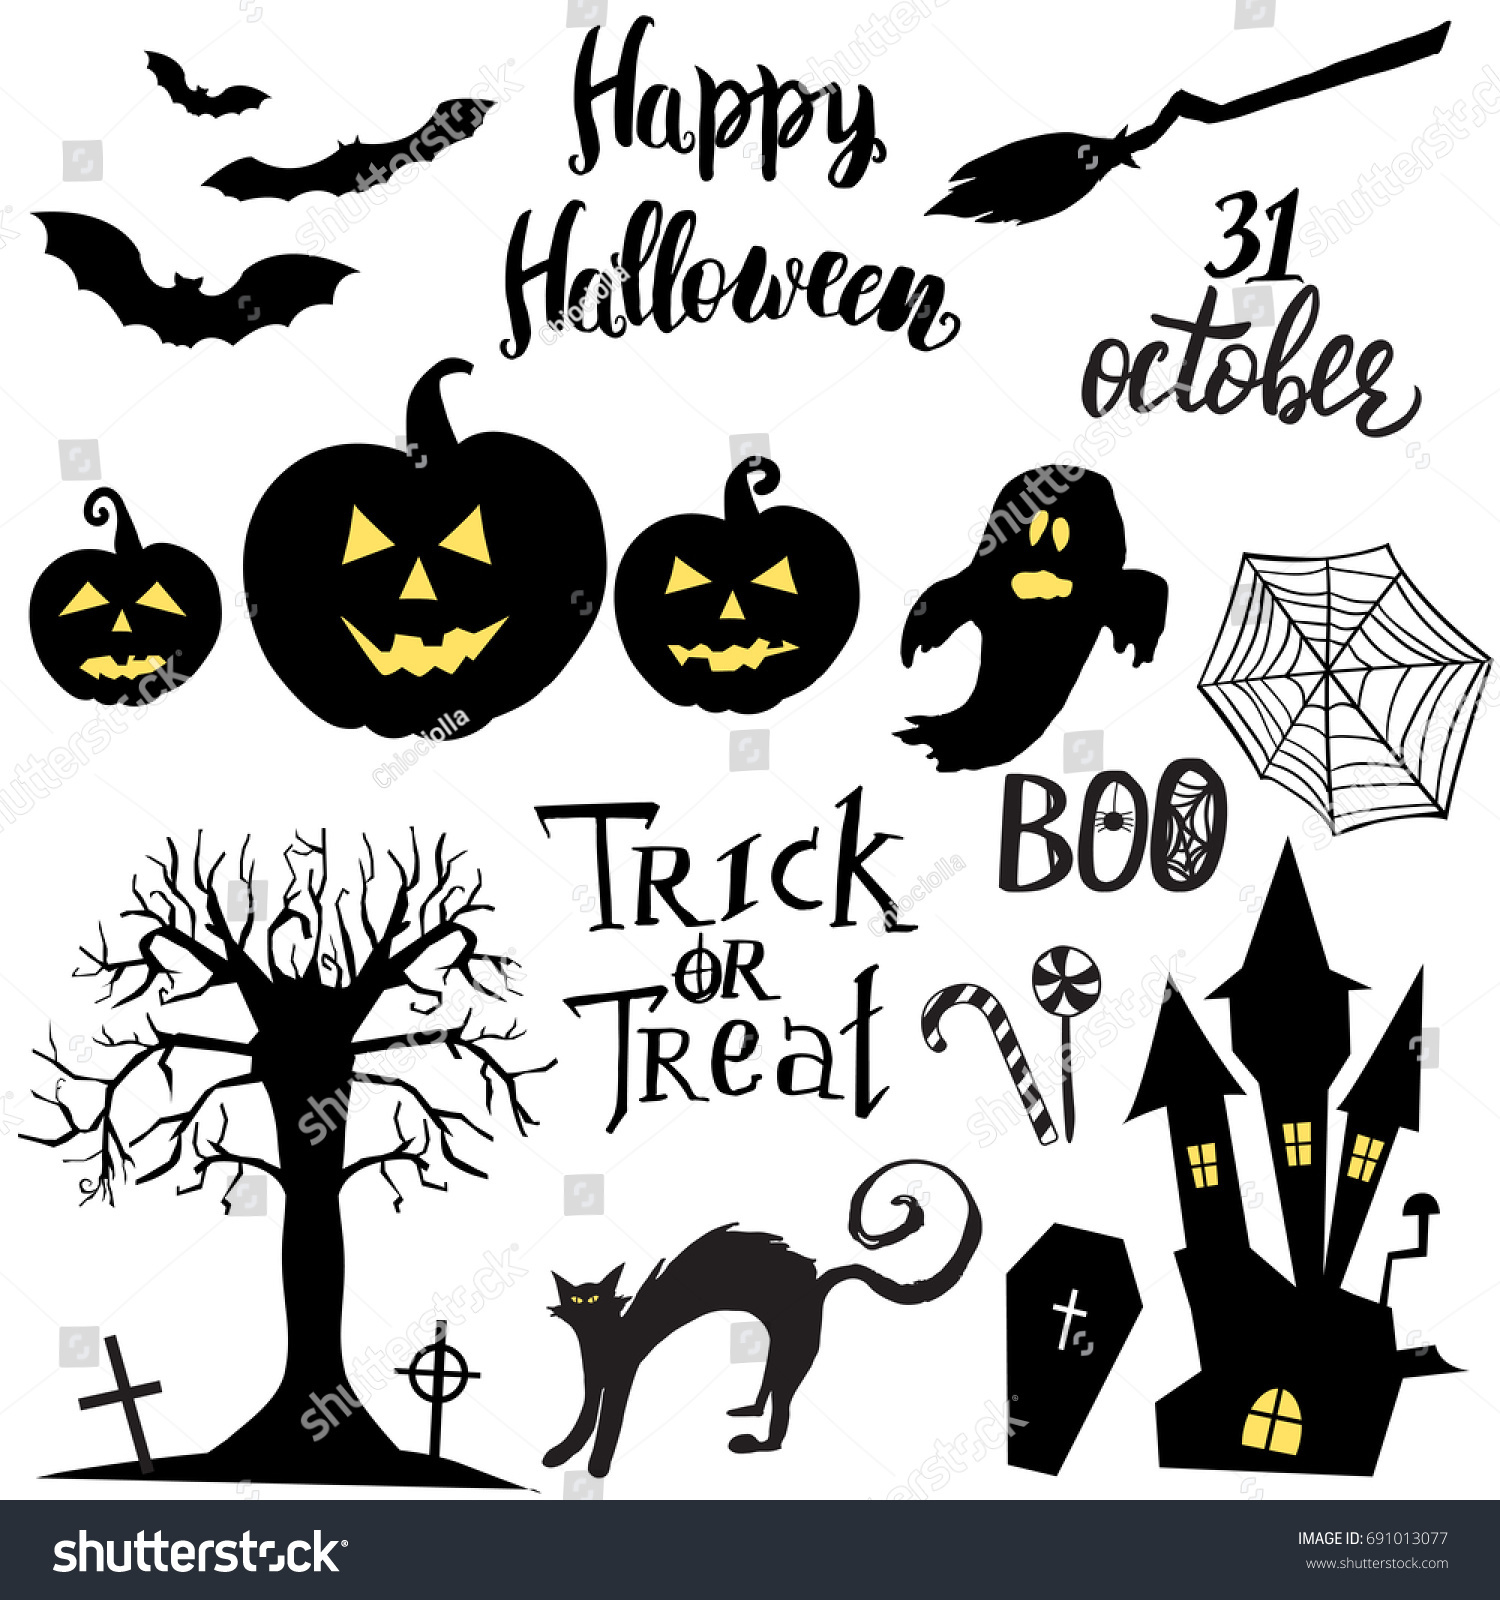 set halloween elements symbols quotes stock vector (royalty free